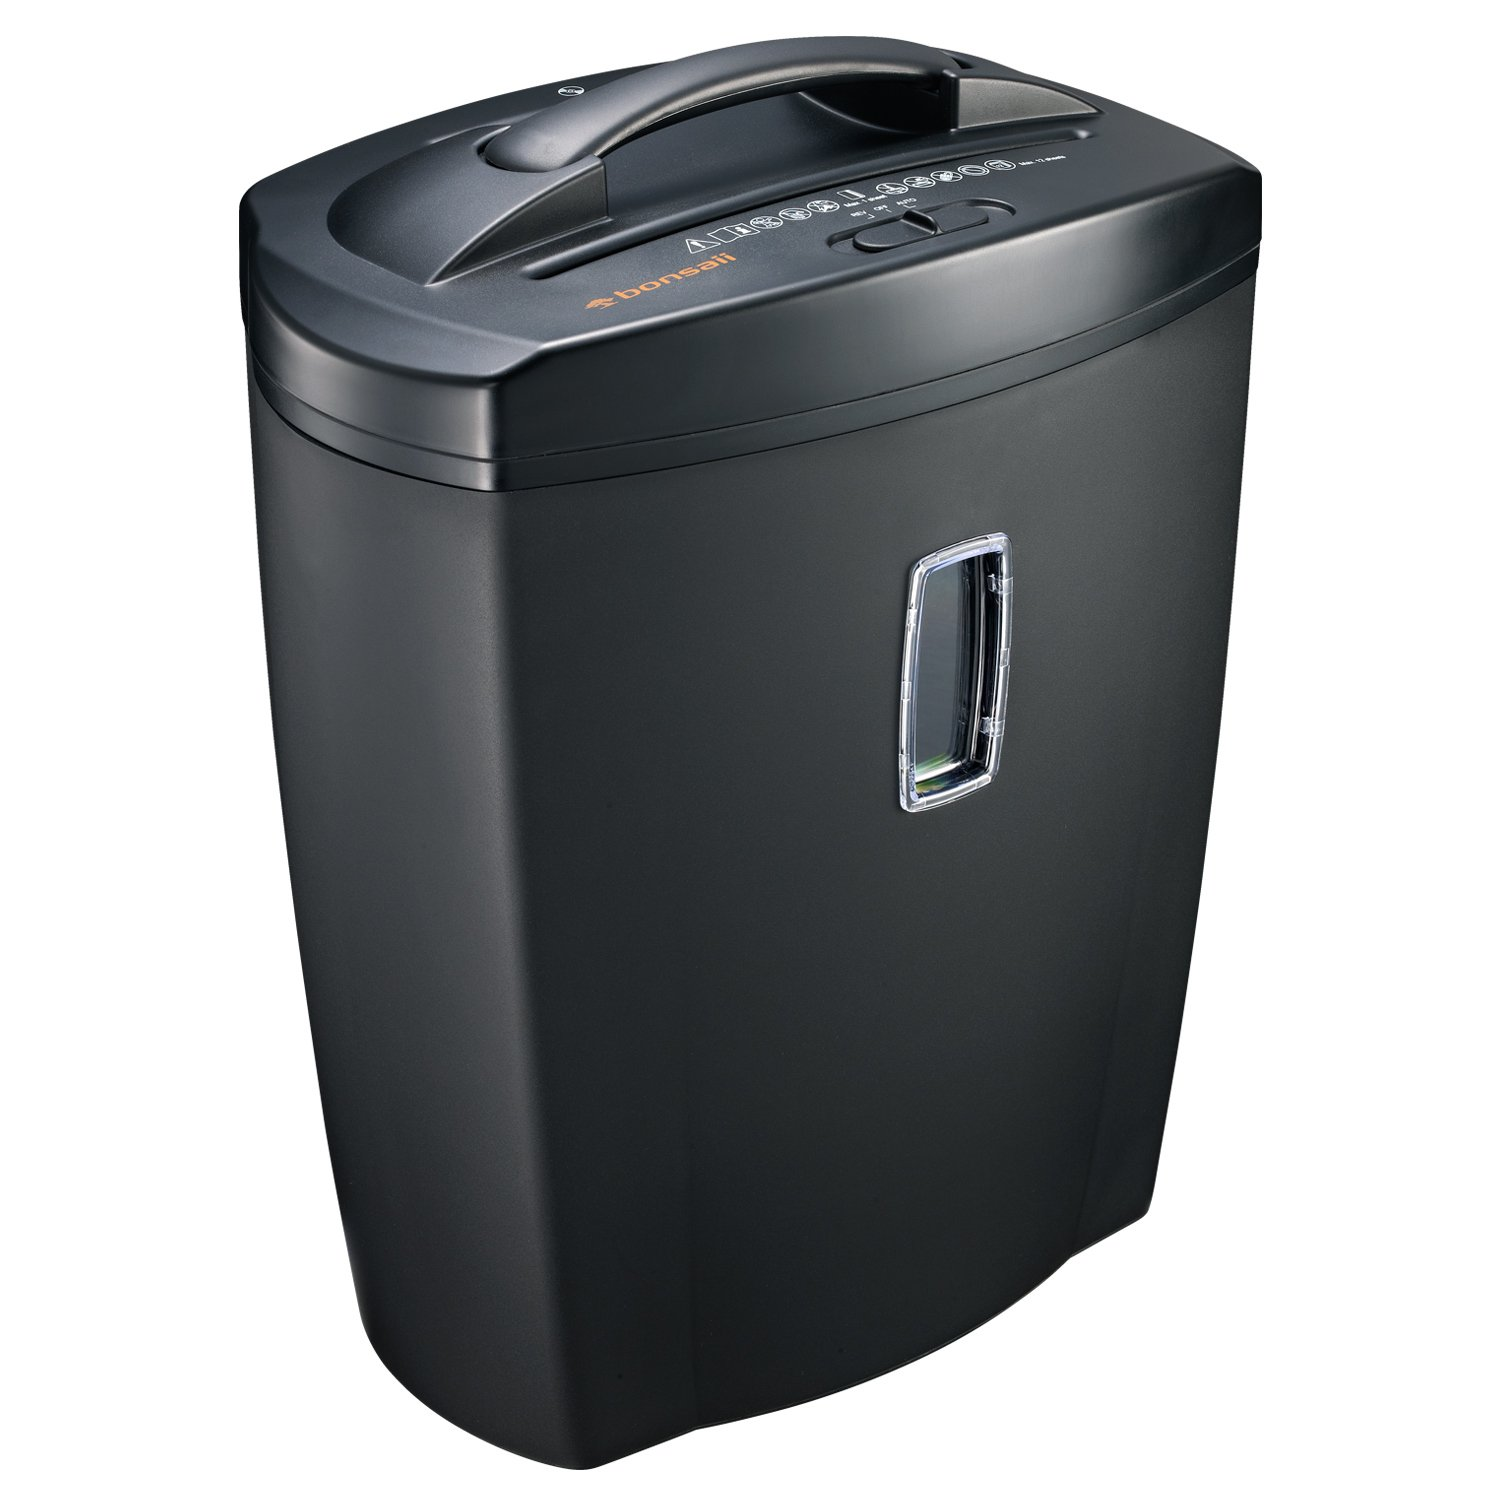 Bonsaii 8-Sheet Micro-Cut (4mm×10mm) Paper/CD/Credit Card Shredder